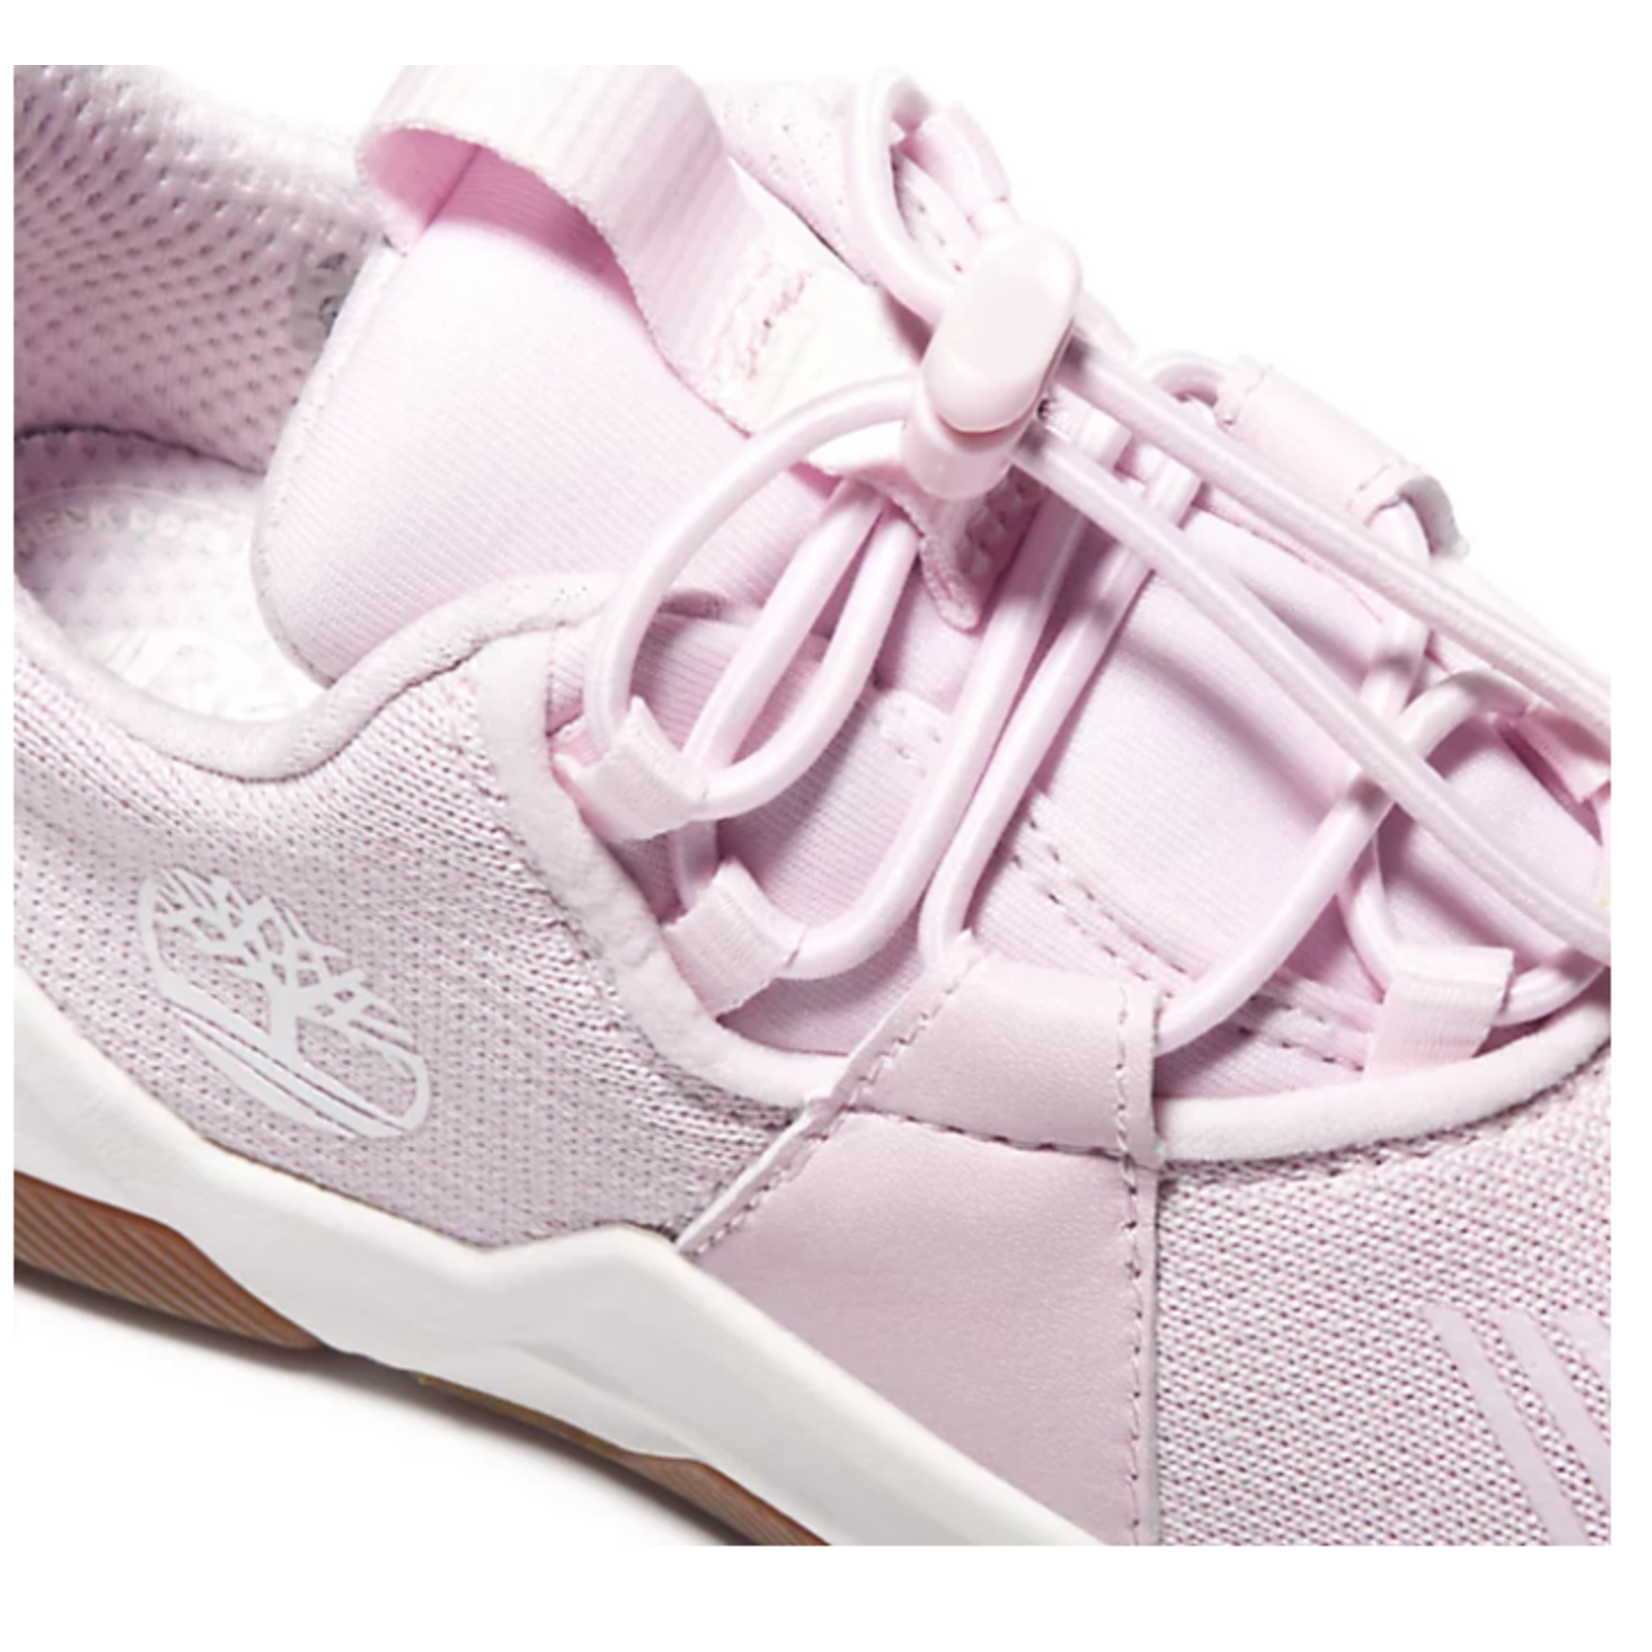 Timberland EARTH RALLY SNEAKER FOR YOUTH IN PINK